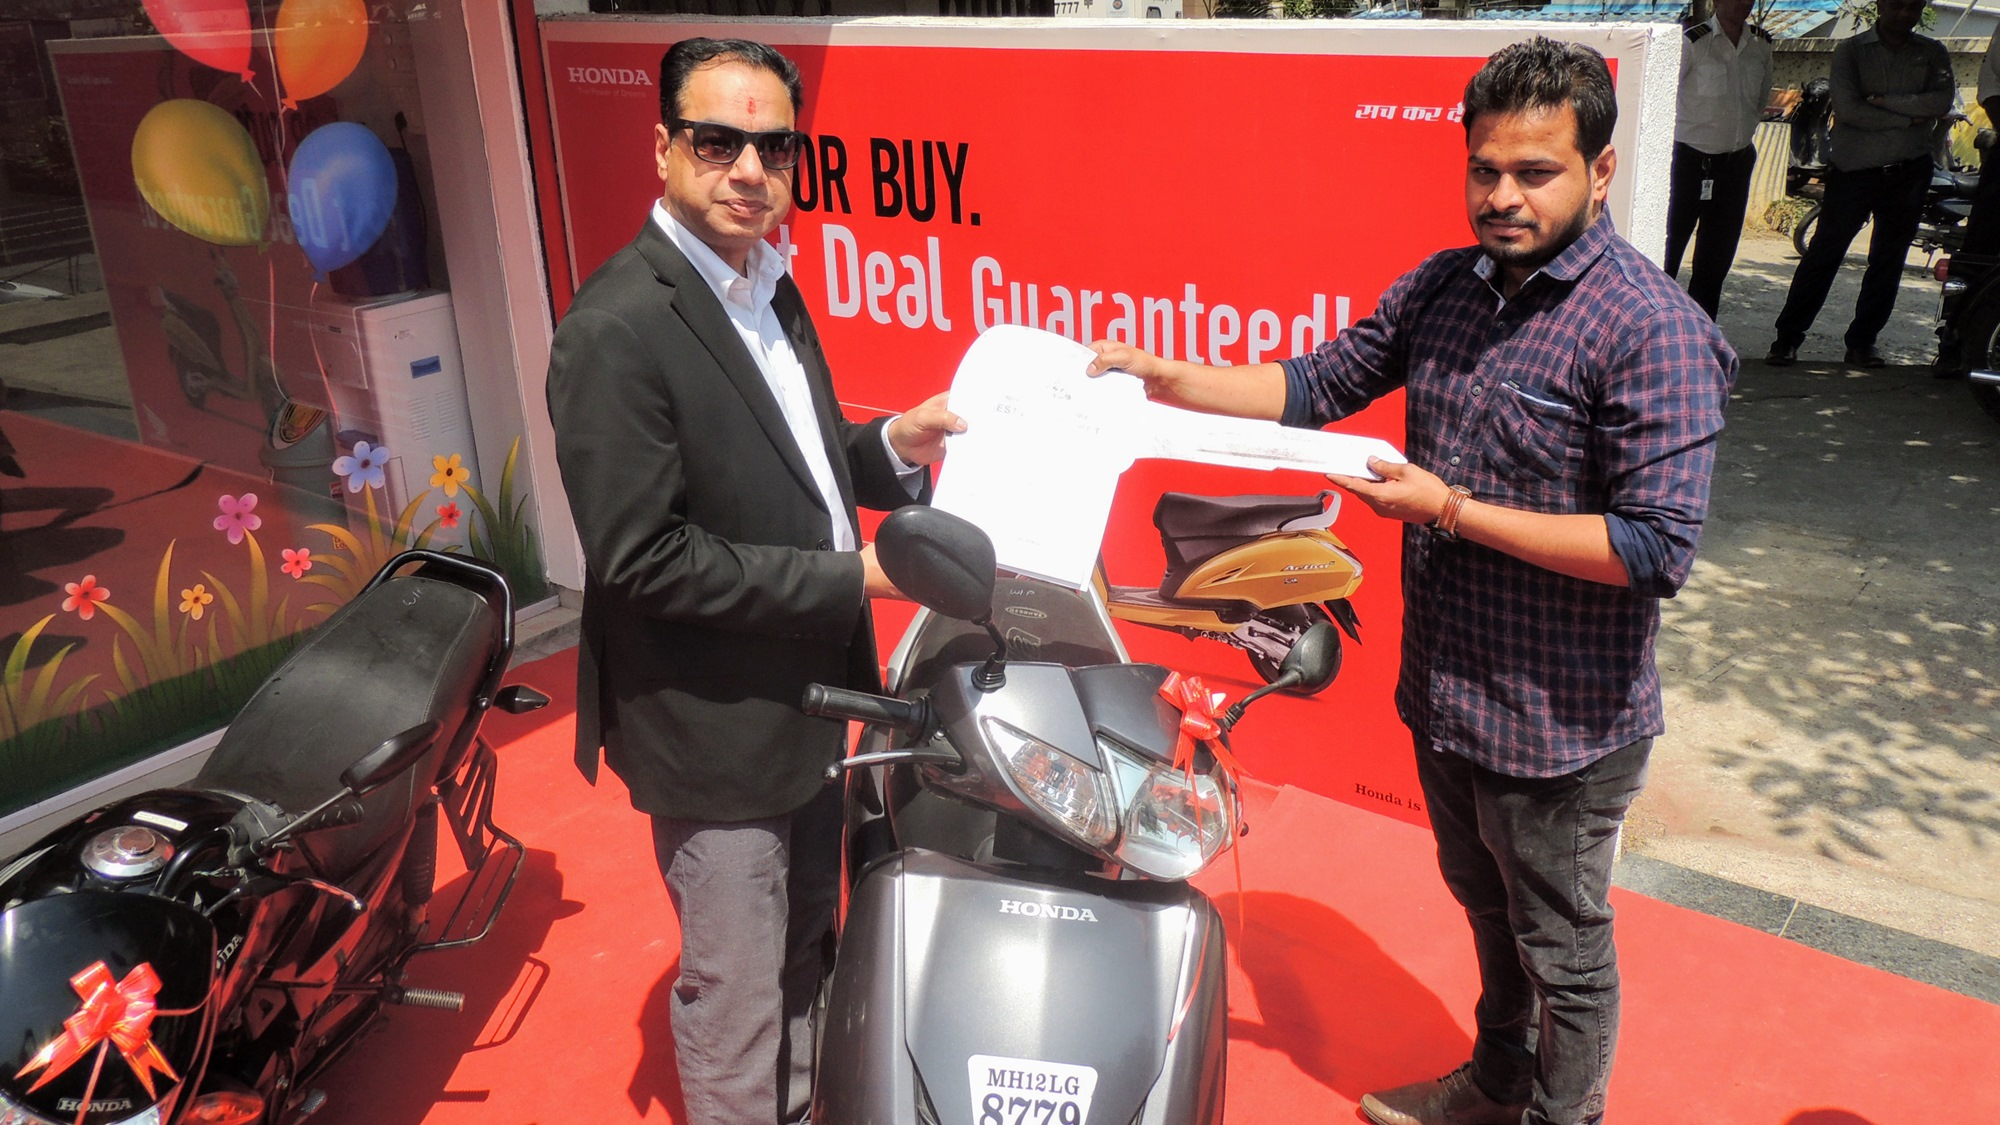 Honda now has 200 Best Deal outlets